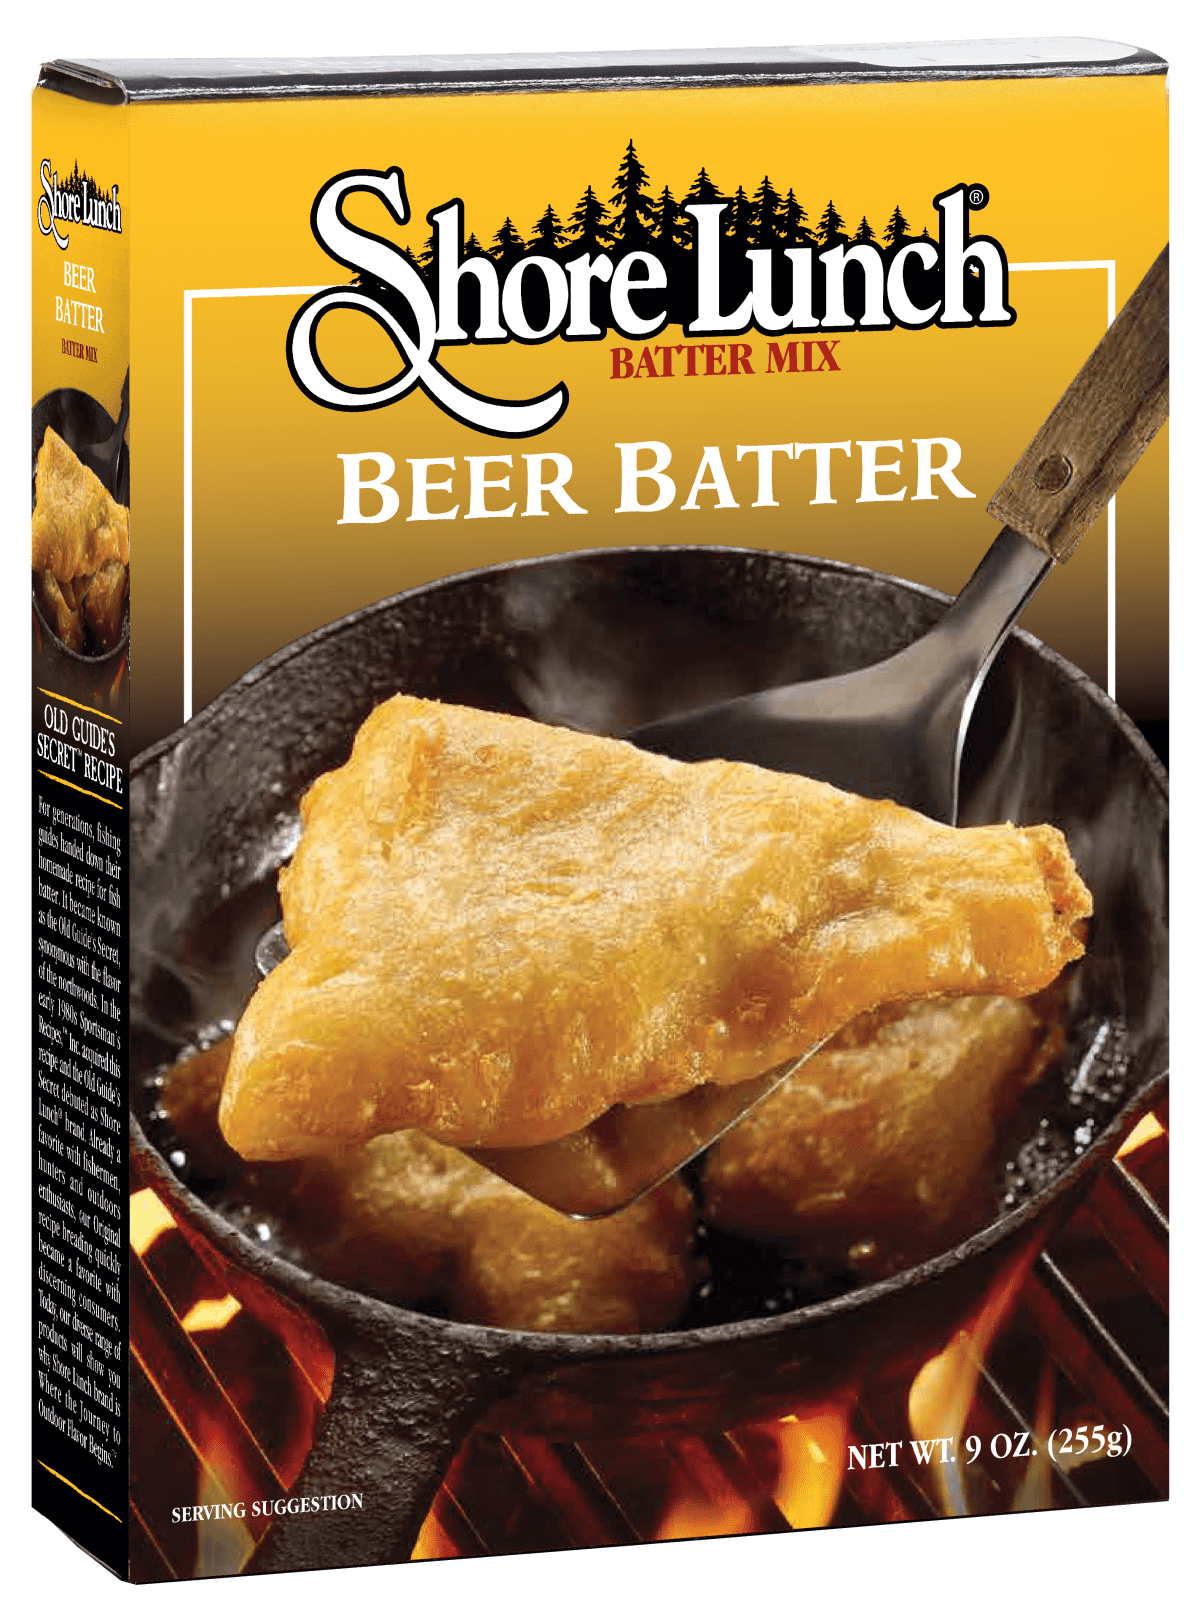 Fish Beer Batter Mix Shore Lunch